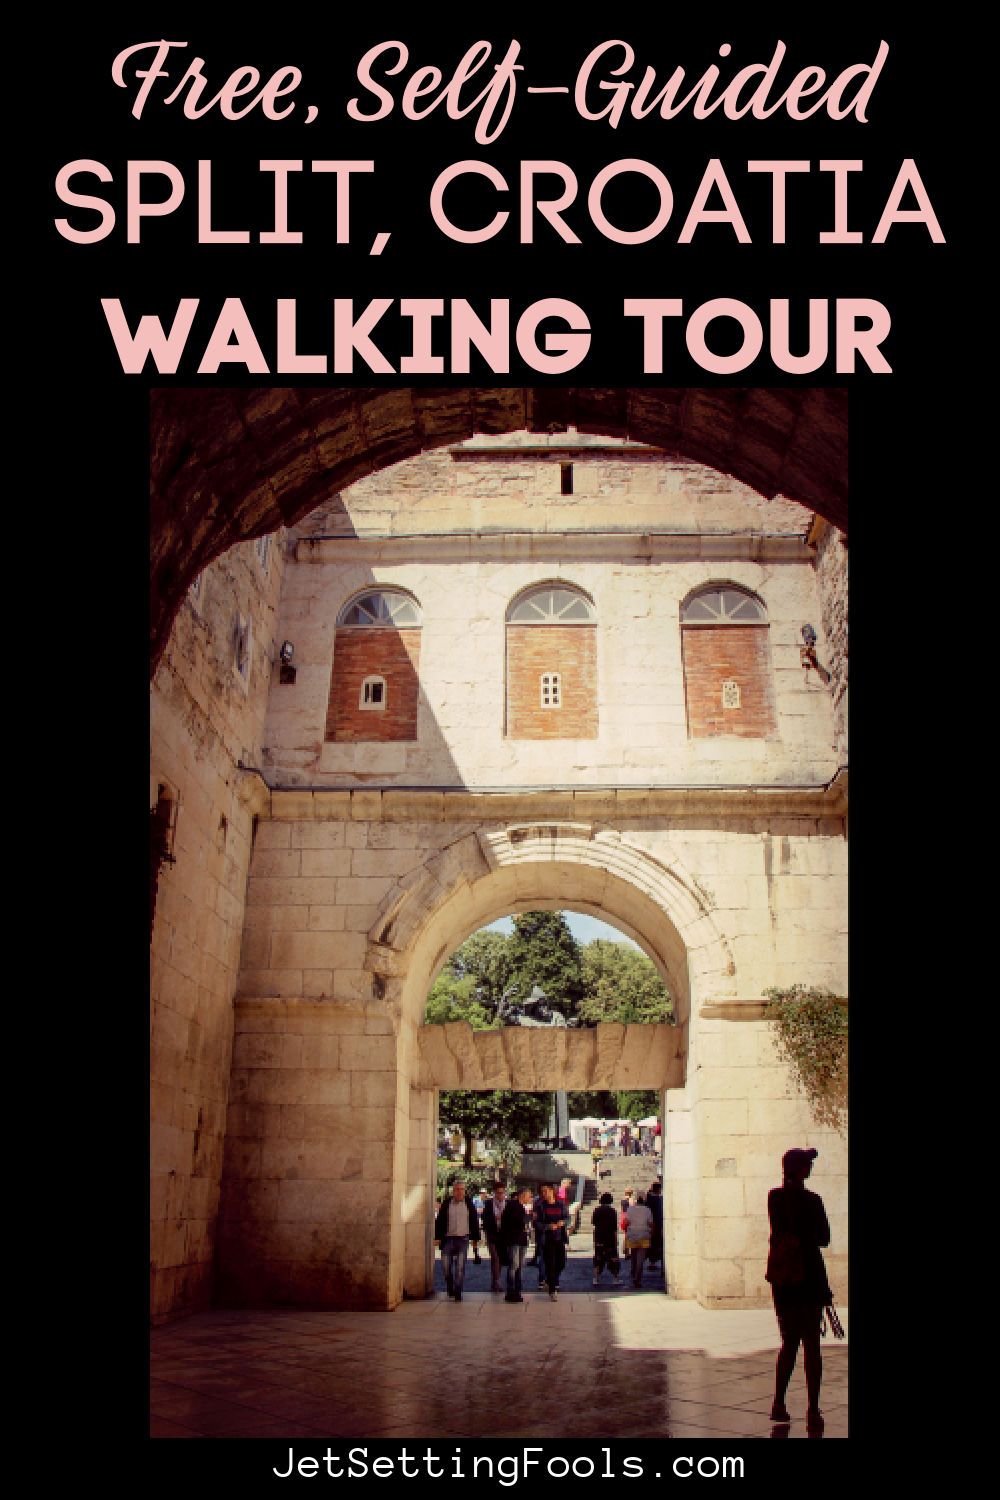 Free Self Guided Split, Croatia Walking Tour by JetSettingFools.com